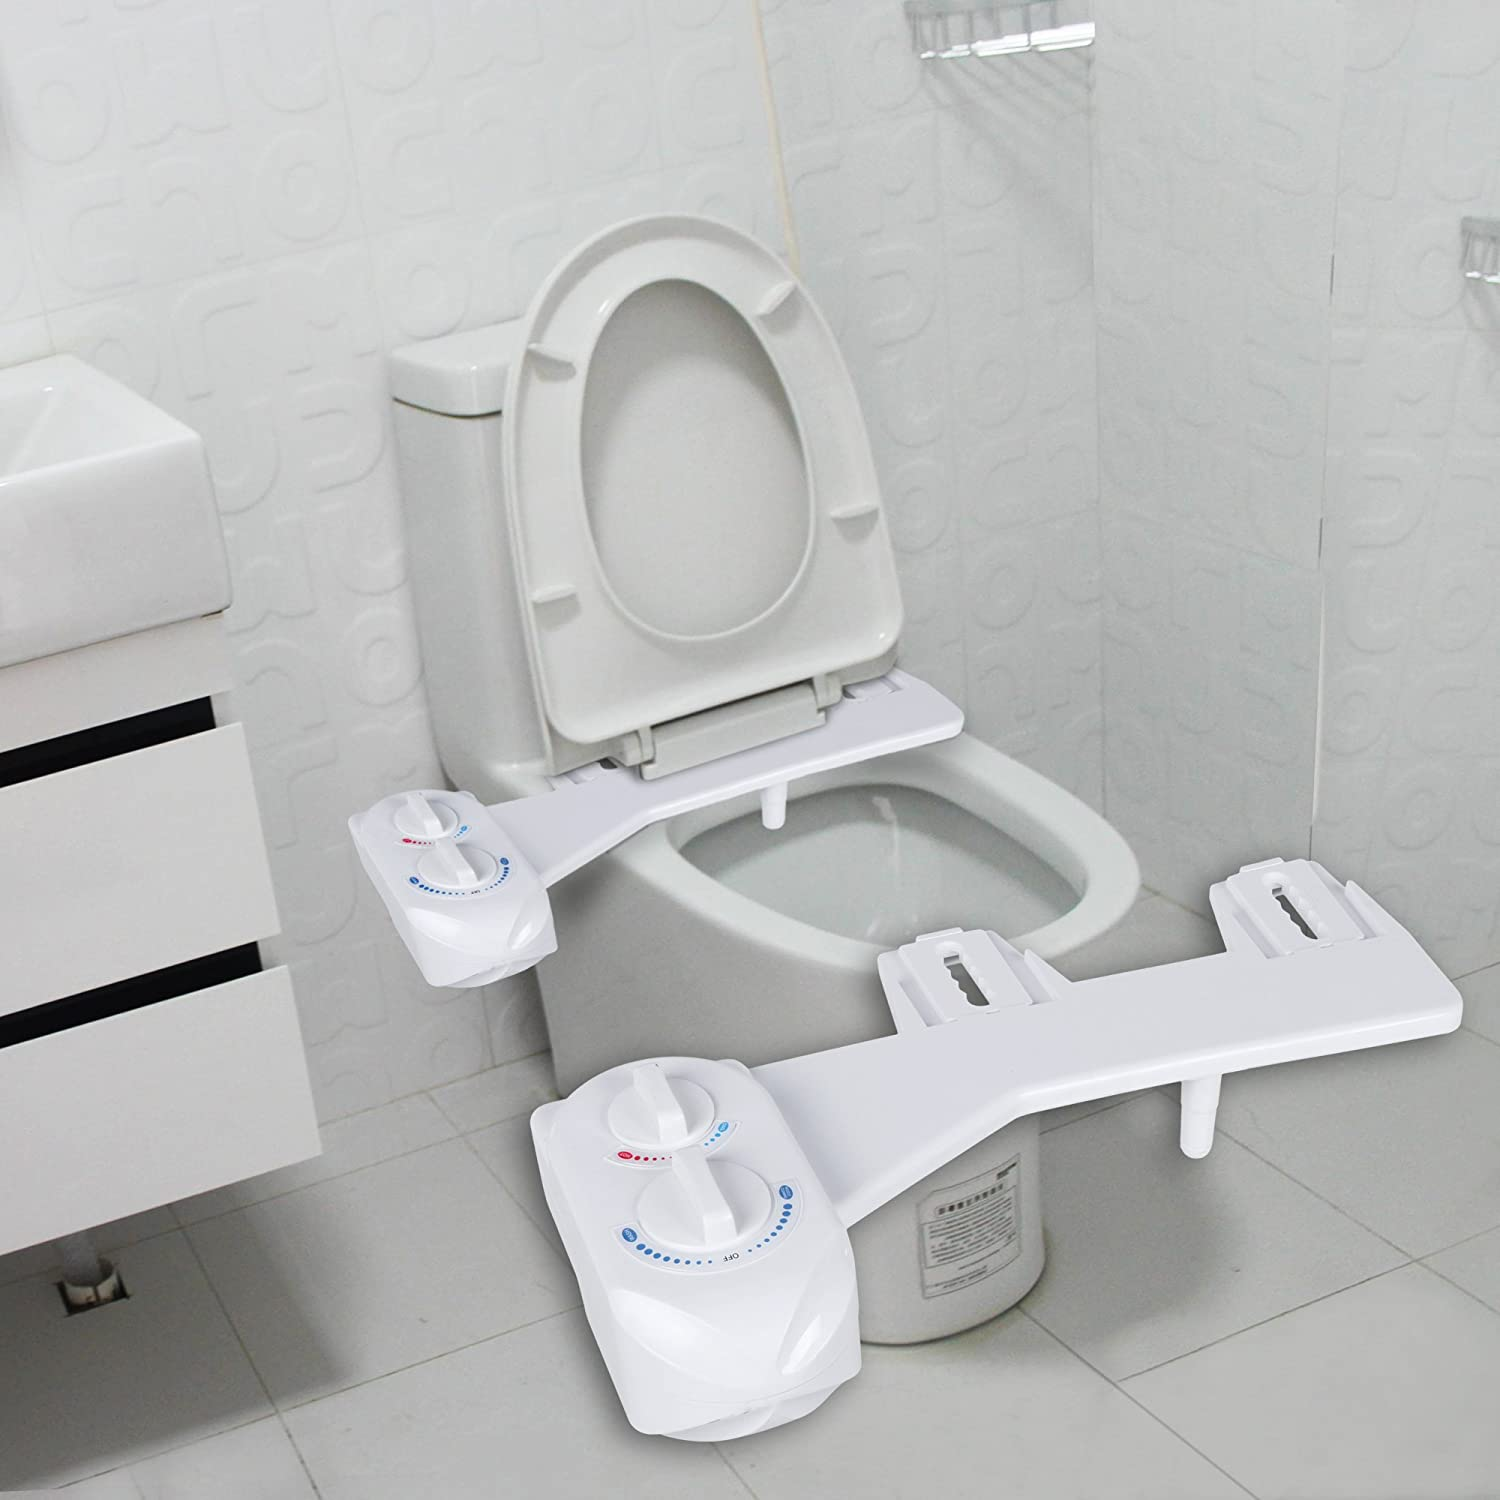 Superbe HOMDOX White Plastic Hot And Cold Water Spray Non Electric Mechanical Self  Clean Bathroom Bidet Toilet Seat Attachment     Amazon.com